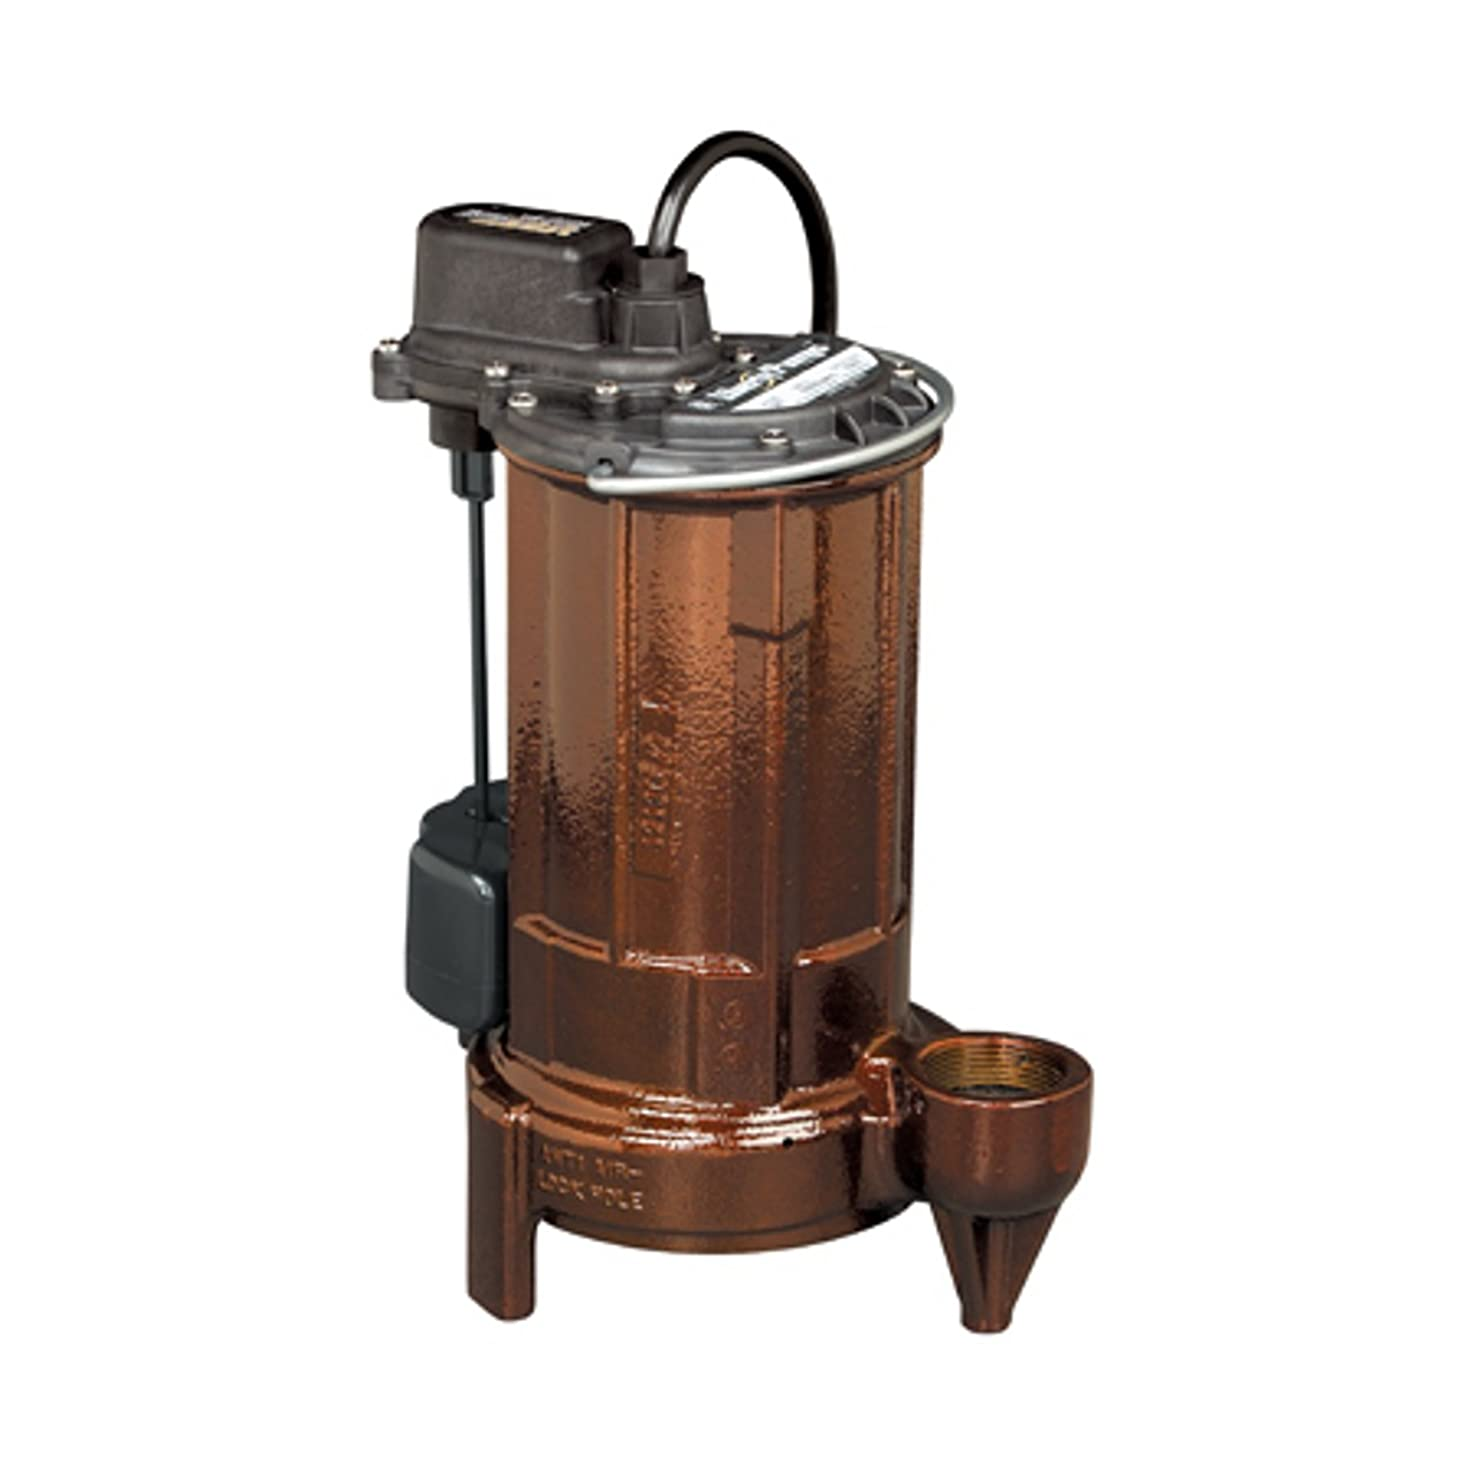 Liberty Pumps 287 1/2-Horse Power 1-1/2-Inch Discharge 280-Series Automatic Submersible Sump Pump with VMF Switch ngssqdzndlkjf2